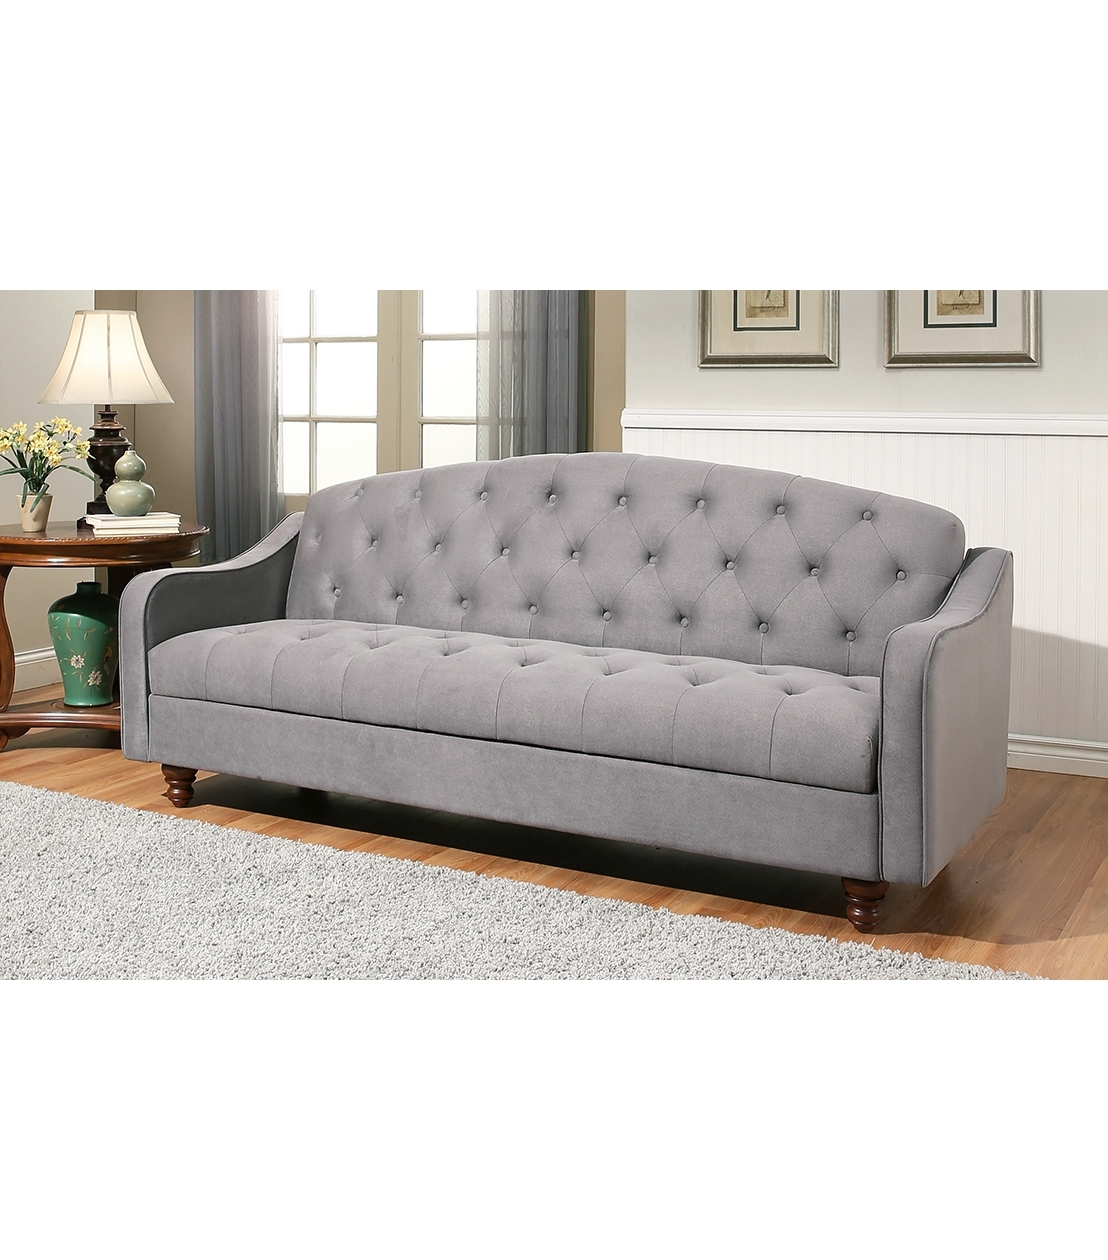 Furniture : Quirky Chesterfield Sofa Kijiji Sofa Set Mississauga Regarding Latest Kijiji Mississauga Sectional Sofas (View 11 of 15)